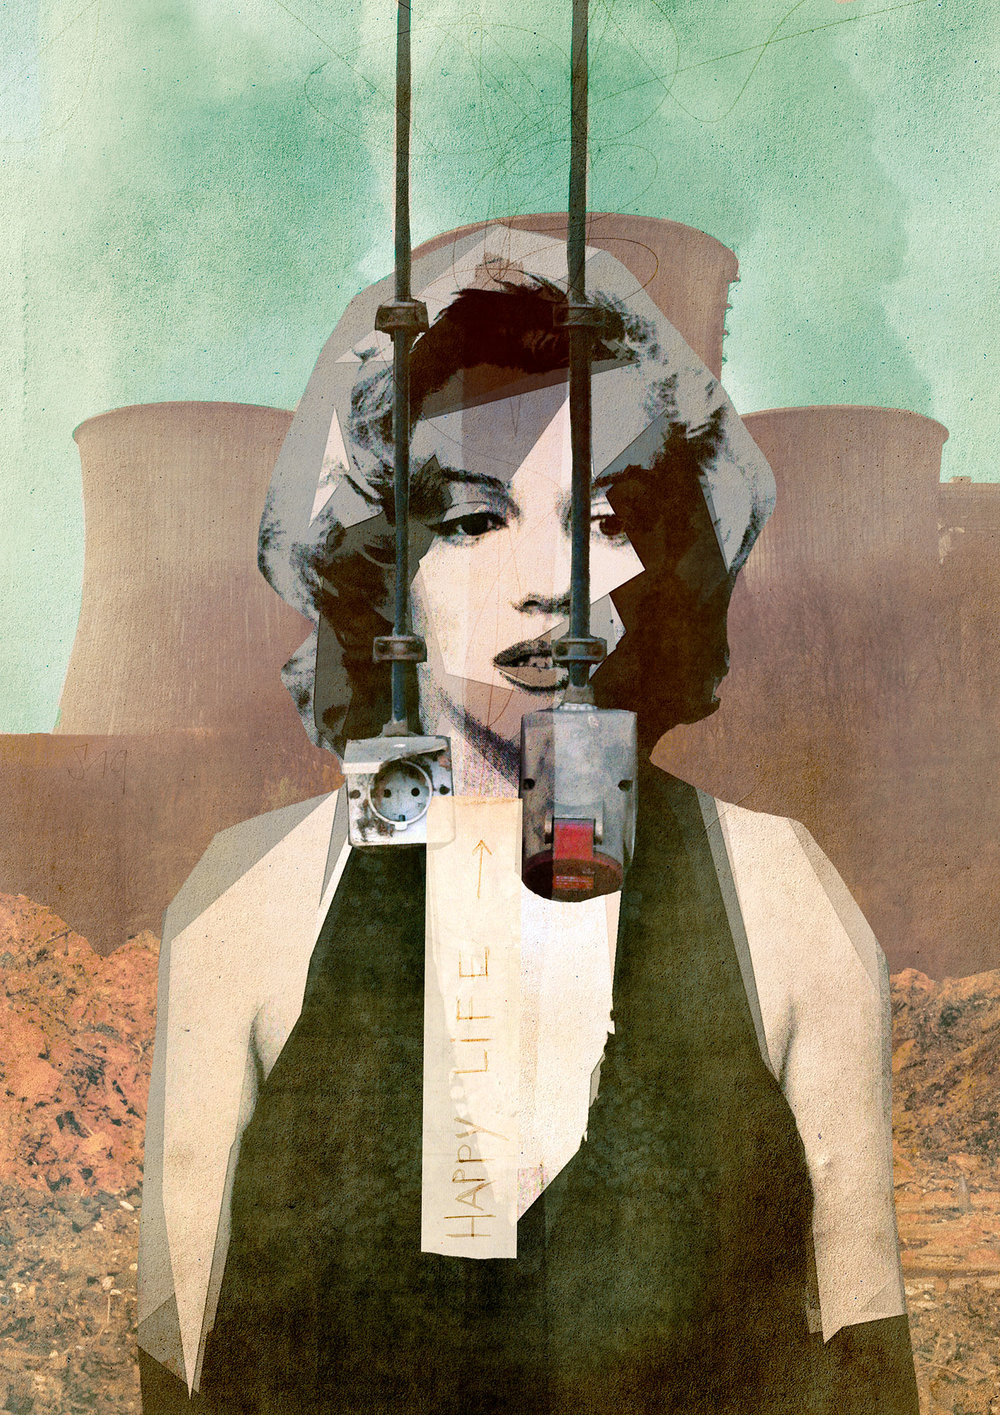 Marilyn's Party , digital collage by Sander Steins (The Netherlands) - Exclusive to Statement Art